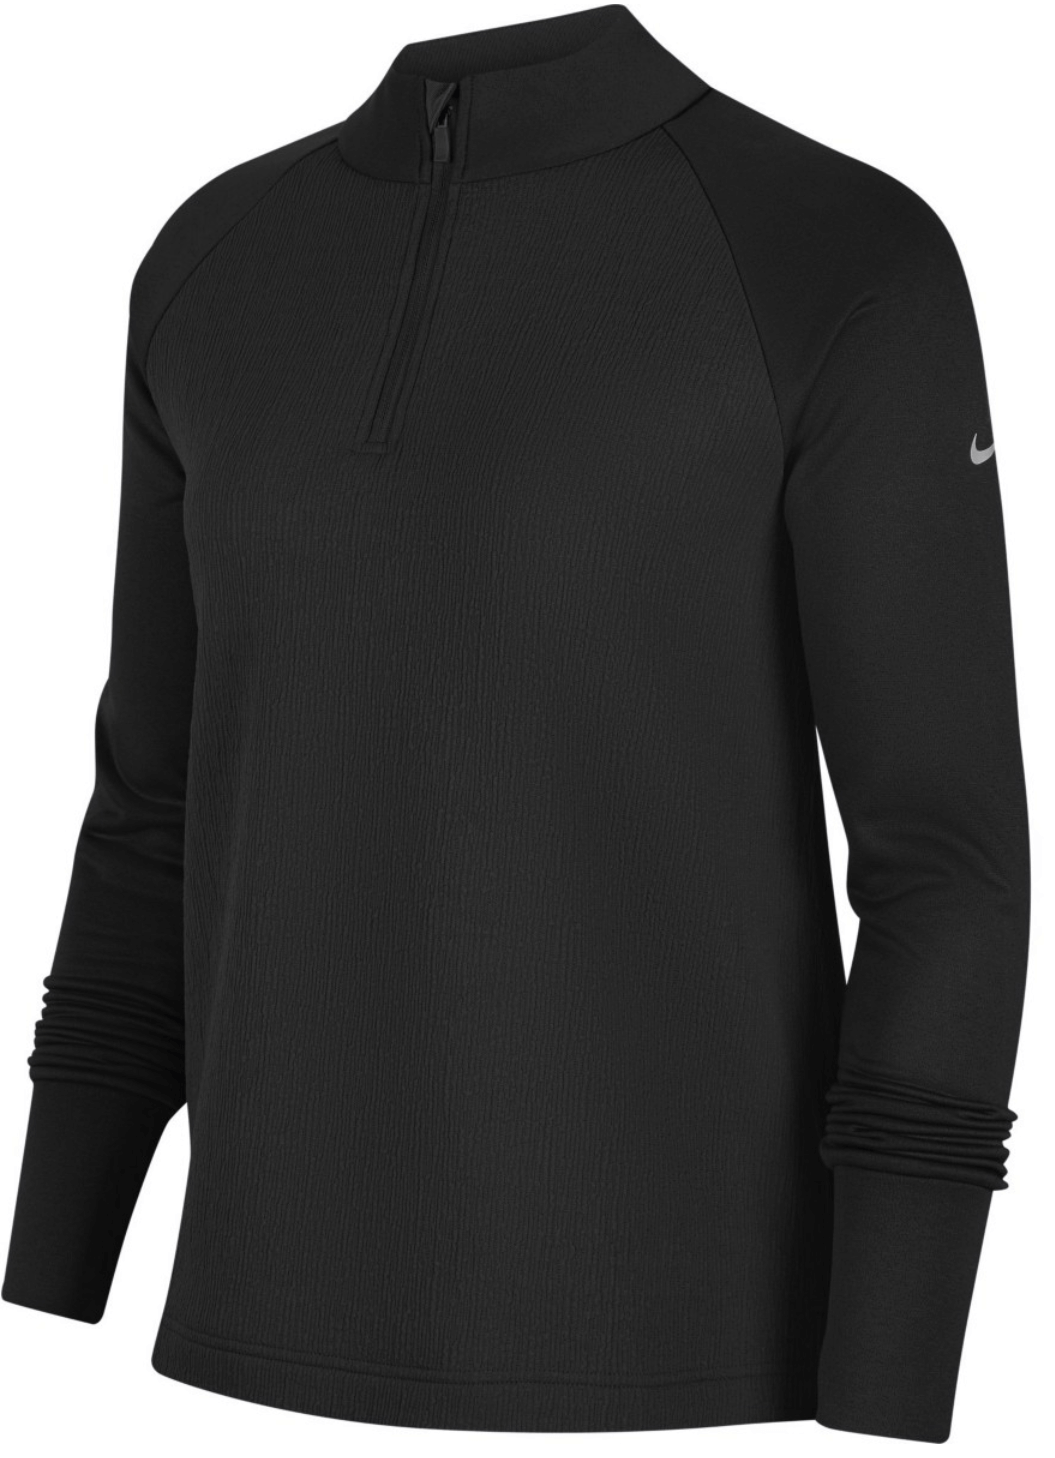 Nike Women's Therma Victory 1/4 Zip